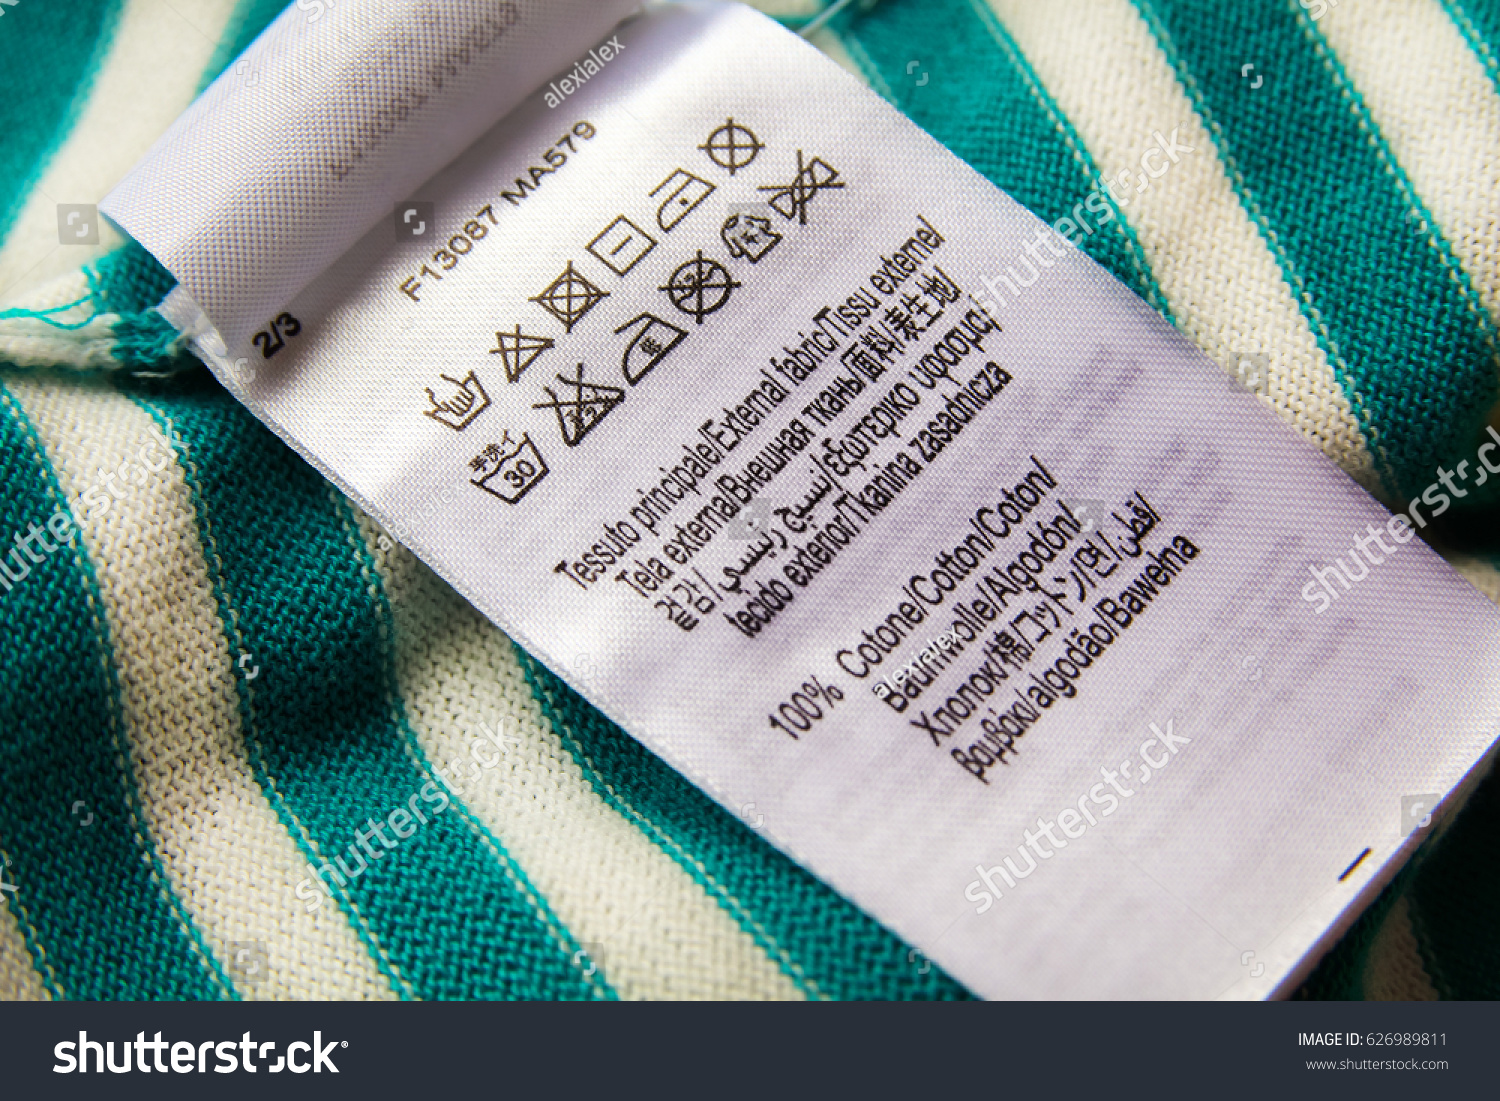 Clothing label laundry care instructions symbols stock for Space pants fabric